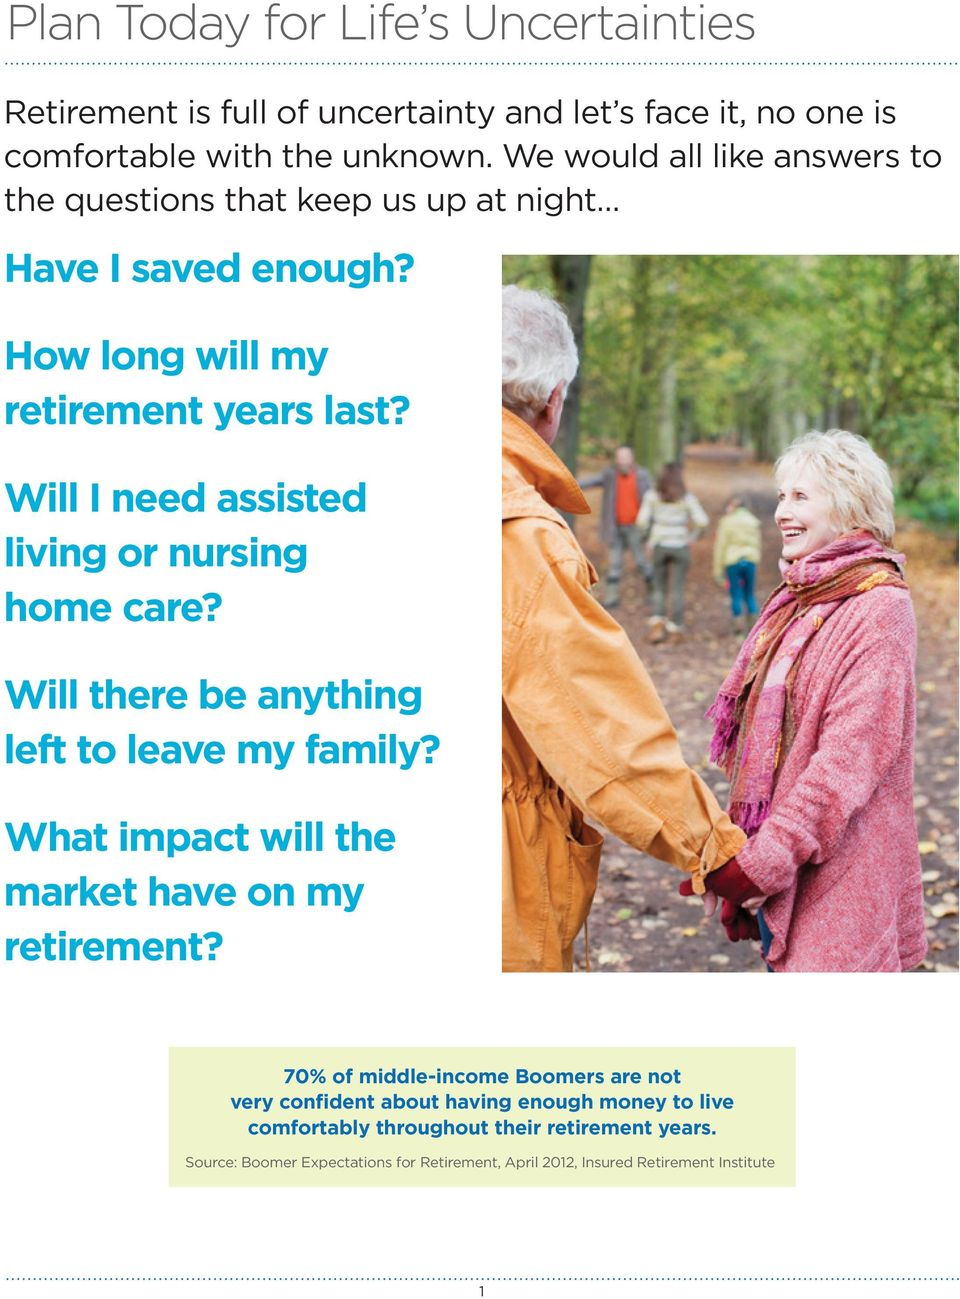 Will I need assisted living or nursing home care? Will there be anything left to leave my family? What impact will the market have on my retirement?